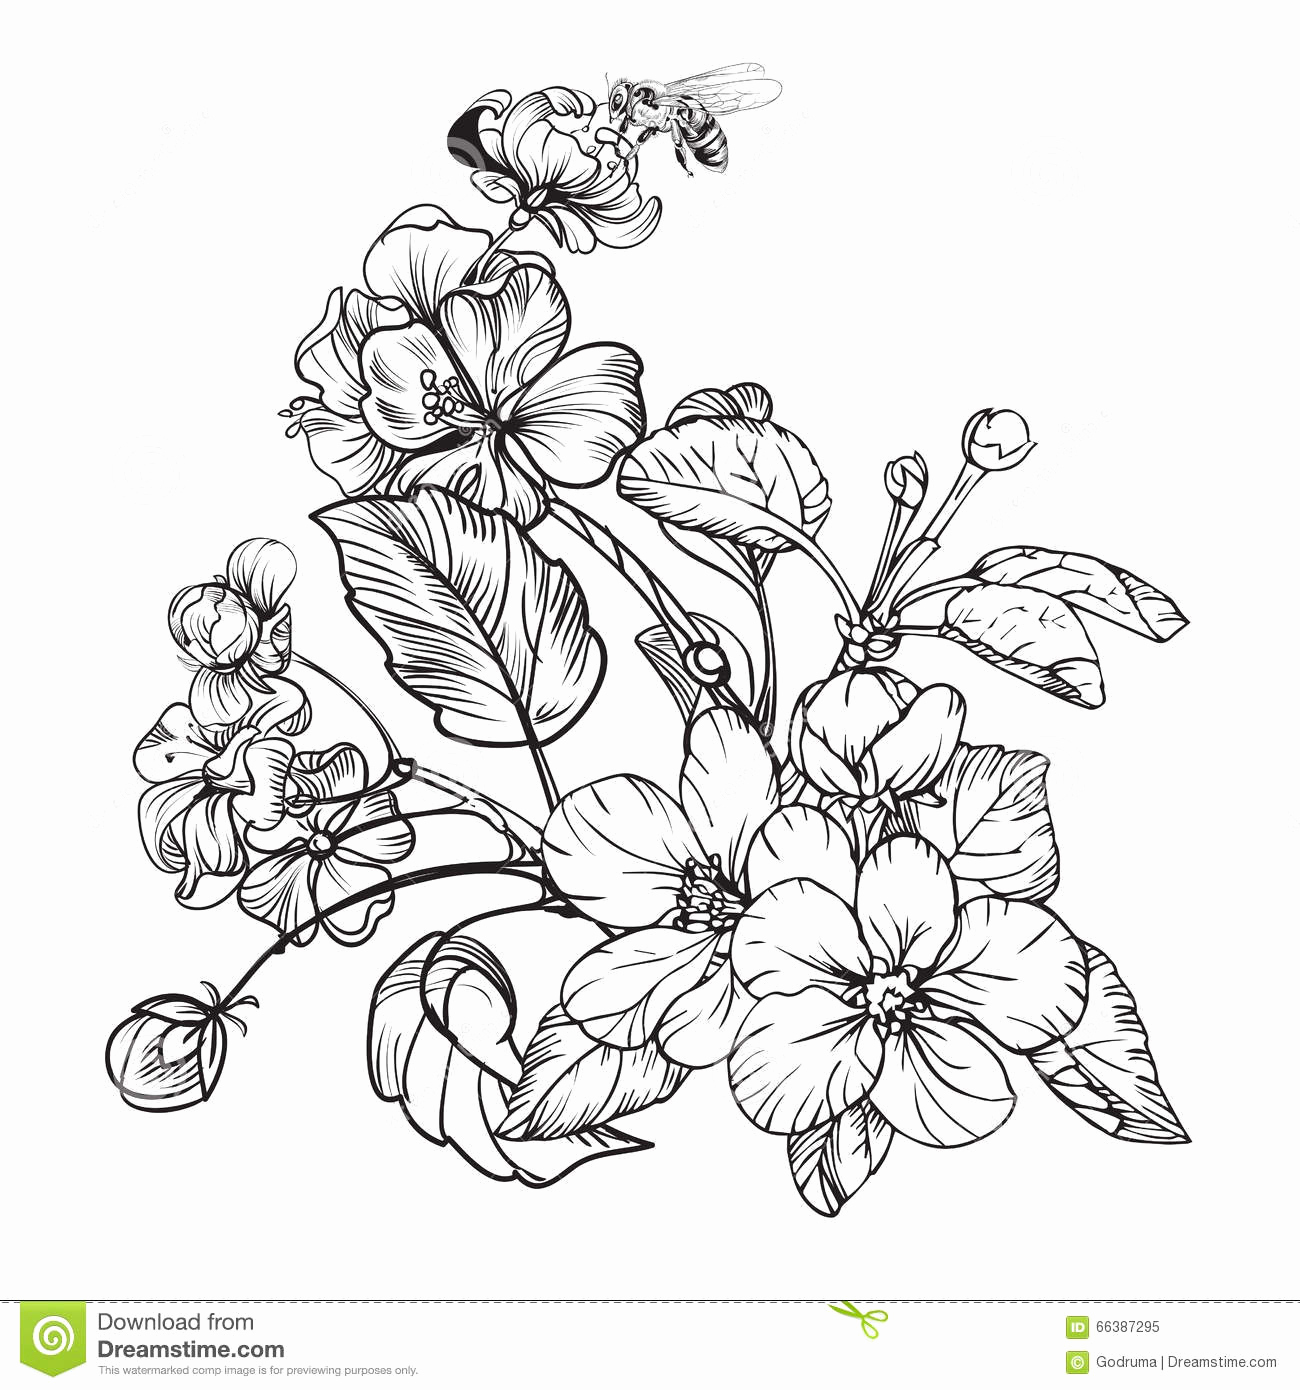 Black and White Illustrations Beautiful Vintage Elegant Flowers Black and White Vector